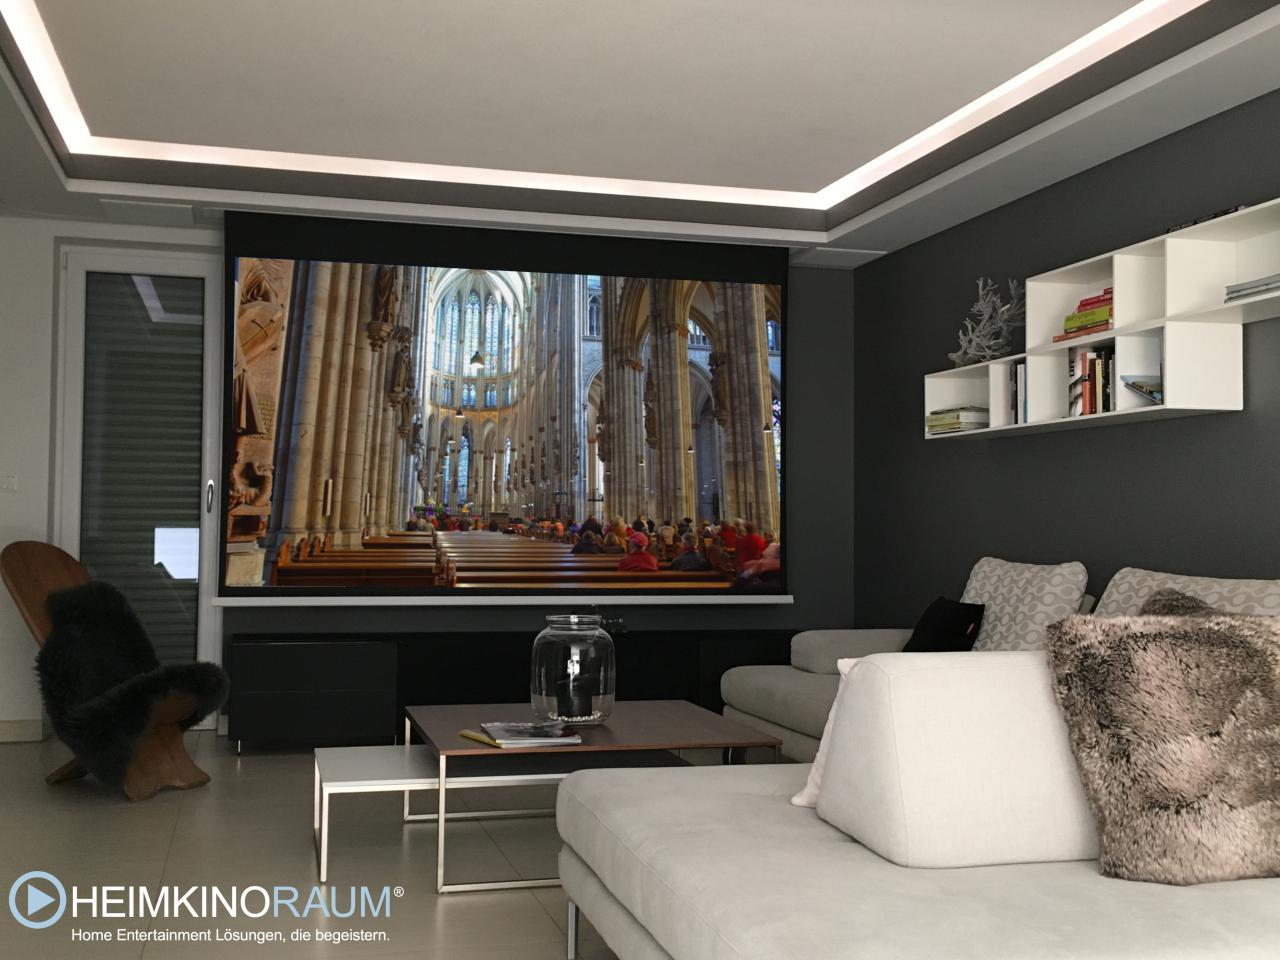 heimkinoraum the art of flight heimkino in regensburg. Black Bedroom Furniture Sets. Home Design Ideas